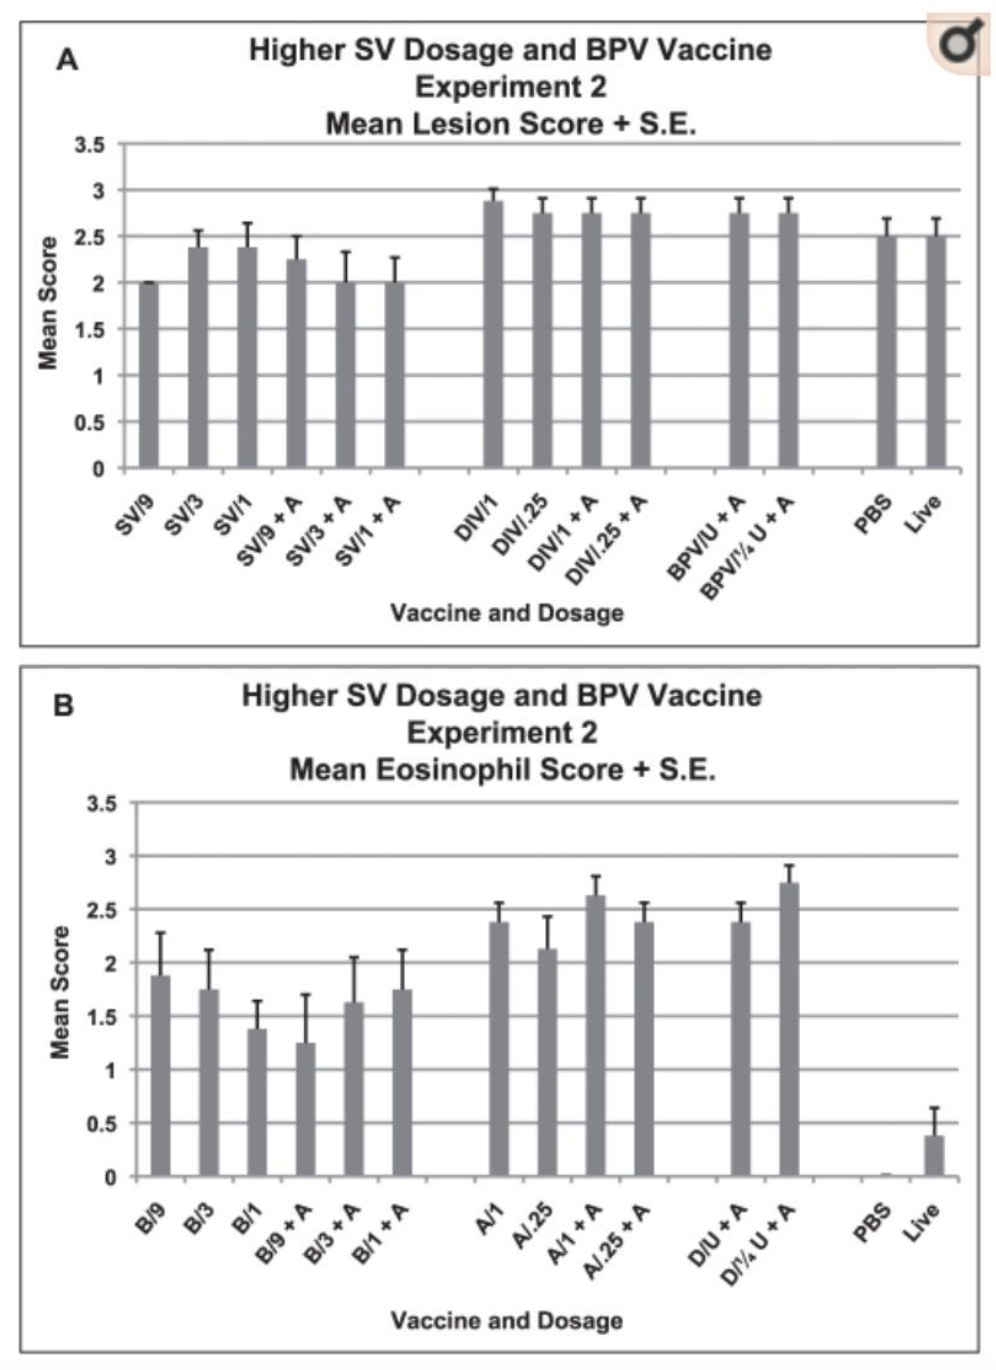 Higher Dosages of SV Vaccine plus DIV and Mean lung cellular infiltration/lesion pathology and mean percent eosinophils in infiltrates for each vaccine dosage group two days after challenge with SARS-CoV. A. Mean lesion score and standard error of the mean (S.E.) for each vaccine dosage group. Scores are mean of scores for seven to eight mice per group. Scoring - 0 - no definite pathology, 1 - mild peribronchiole and perivascular cellular infiltration, 2 - moderate peribronchiole and perivascular cellular infiltration, 3 - severe peribronchiolar and perivascular cellular infiltration with thickening of alveolar walls, alveolar infiltration and bronchiole epithelial cell necrosis and debris in the lumen. Ten to 20 microscopy fields were scored for each mouse lung. B. Mean score and standard error of the mean (S.E.) for eosinophils as percent of infiltrating cells for each vaccine dosage group. Scores are mean of scores for seven to eight mice per group. Scoring: 0 - <5% of cells, 1 - 5–10% of cells, 2 - 10–20% of cells, 3 - >20% of cells. Ten to 20 microscopy fields were scored for each mouse lung. Analyses: A. Mean lesion scores were different p<.001. Mean scores were lower for SV than DIV p<.001 and less than BPV p = .006. B. Mean eosinophil scores were lower for SV than DIV p<.001 and less than BPV p<.001. Eosinophil scores greater for SV than PBS or live virus p<.001.